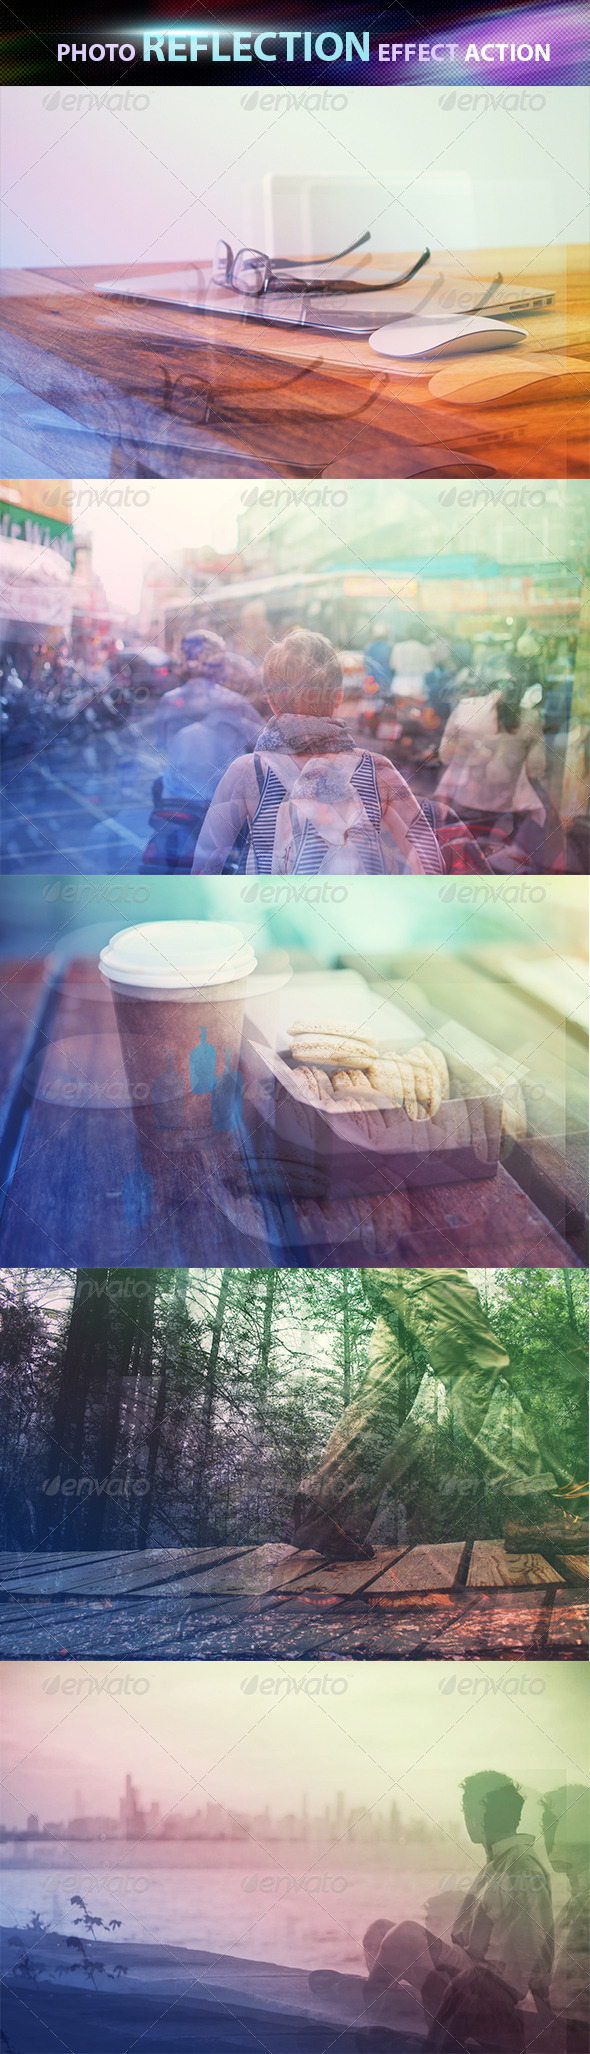 GraphicRiver Photo Reflection Effect Photoshop Action 8507291